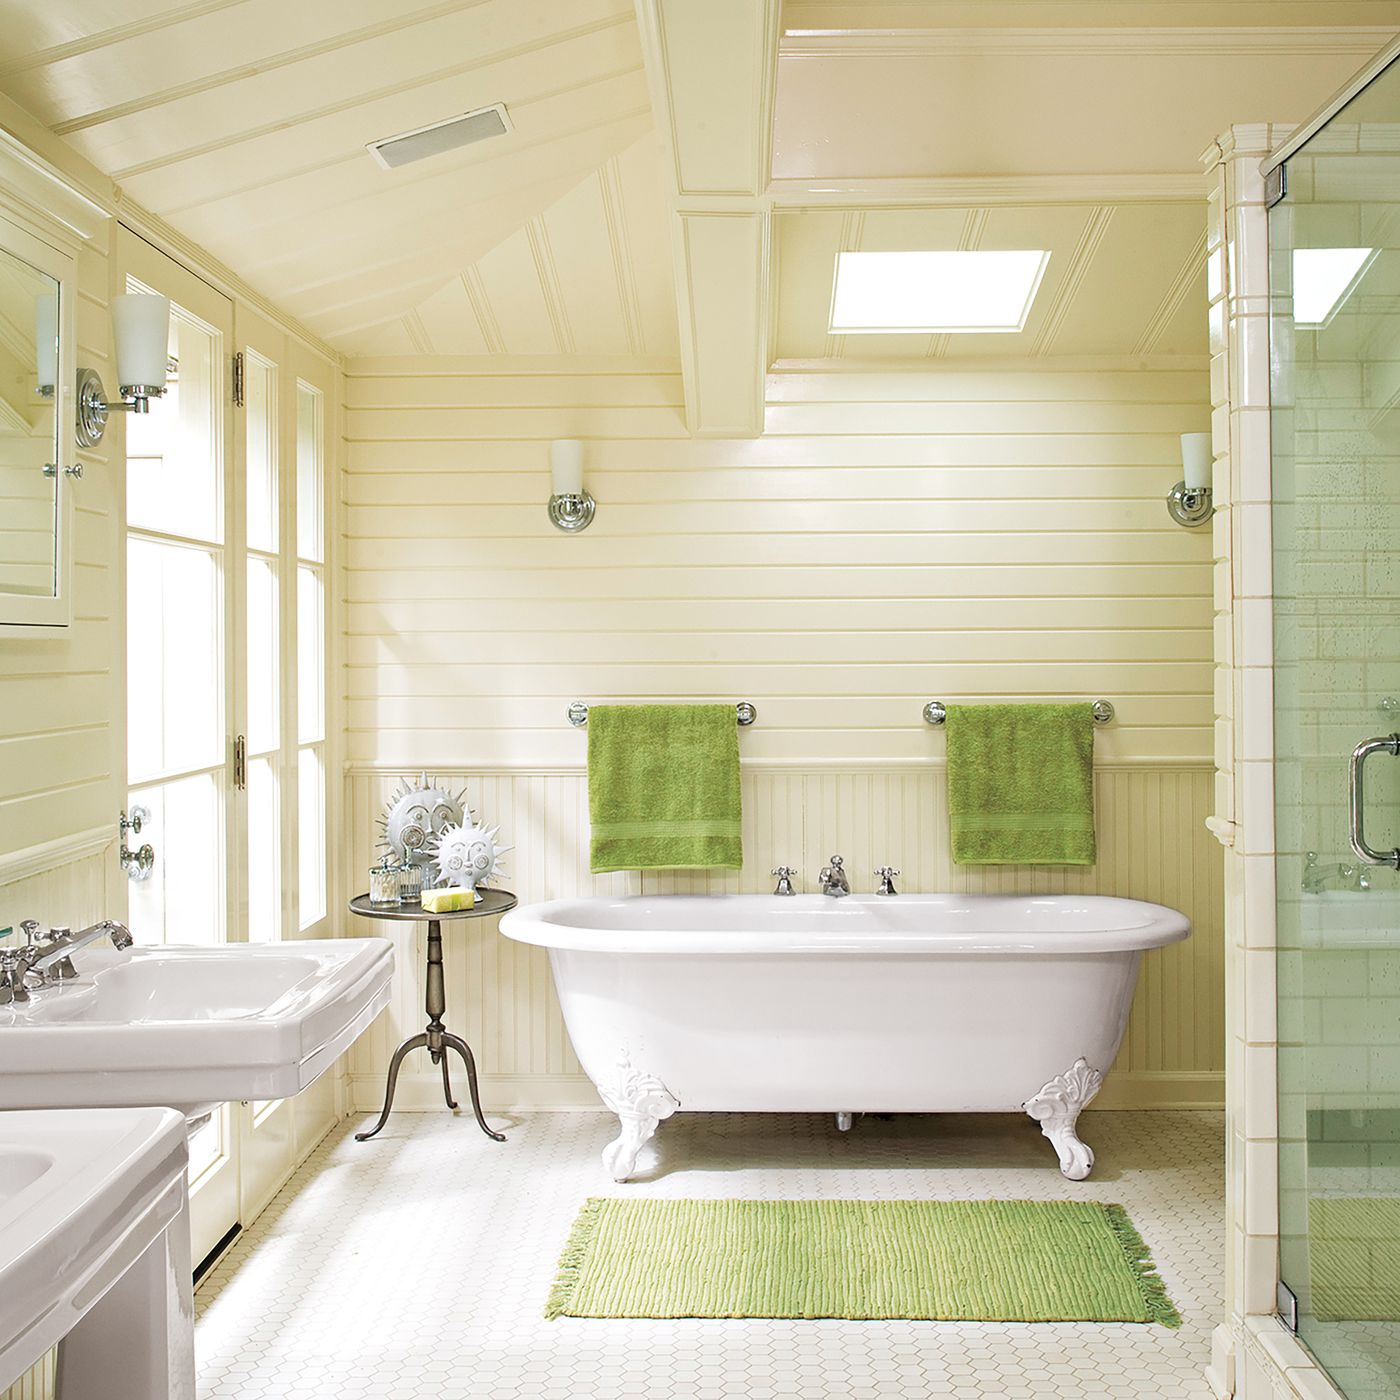 Diy Bathroom Remodel Ideas This Old House